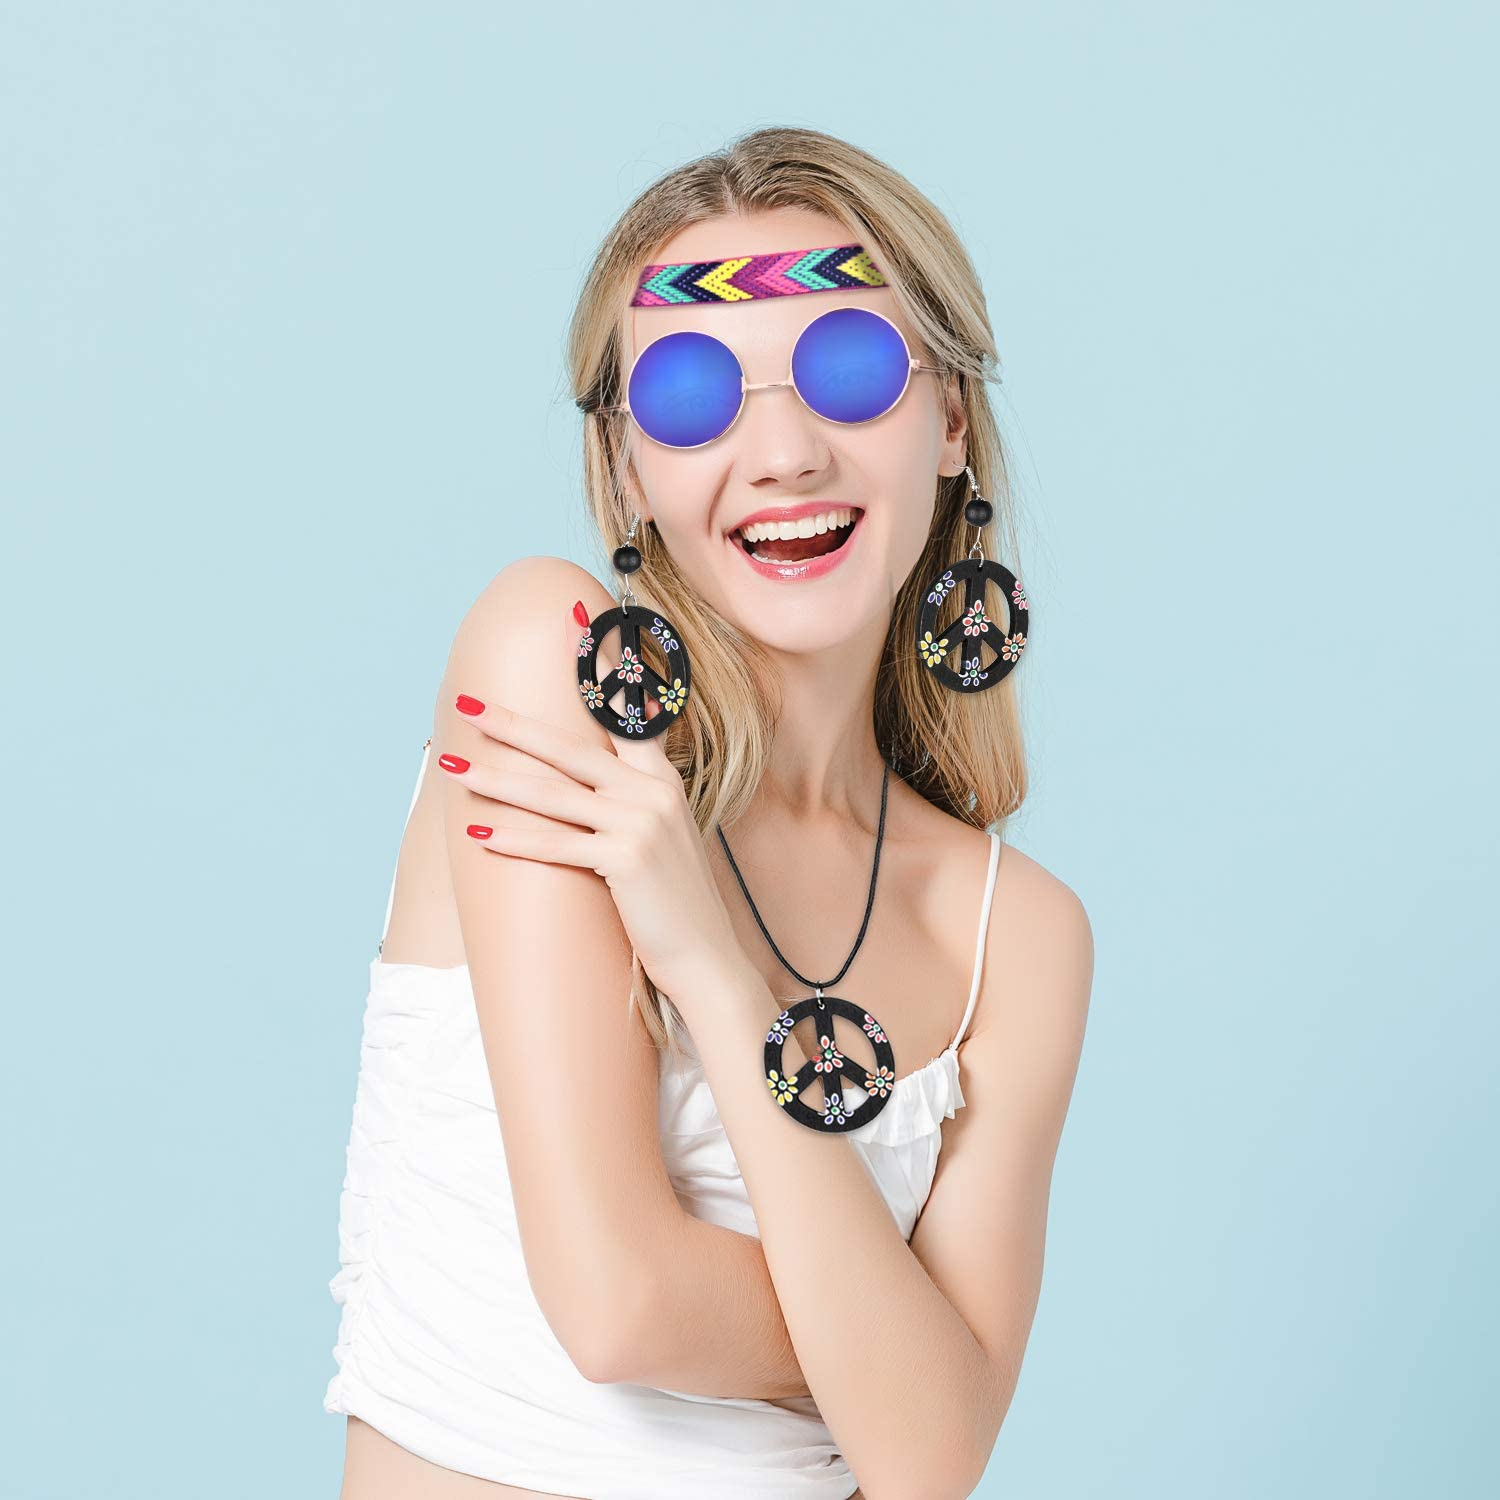 4 Pieces Hippie Accessory Set Hippie Style Peace Sign for Women /& Men Includes Hippie Sunglasses,Peace Sign Necklace,Headband,Peace Sign Earrings 60s or 70s Hippie Accessories